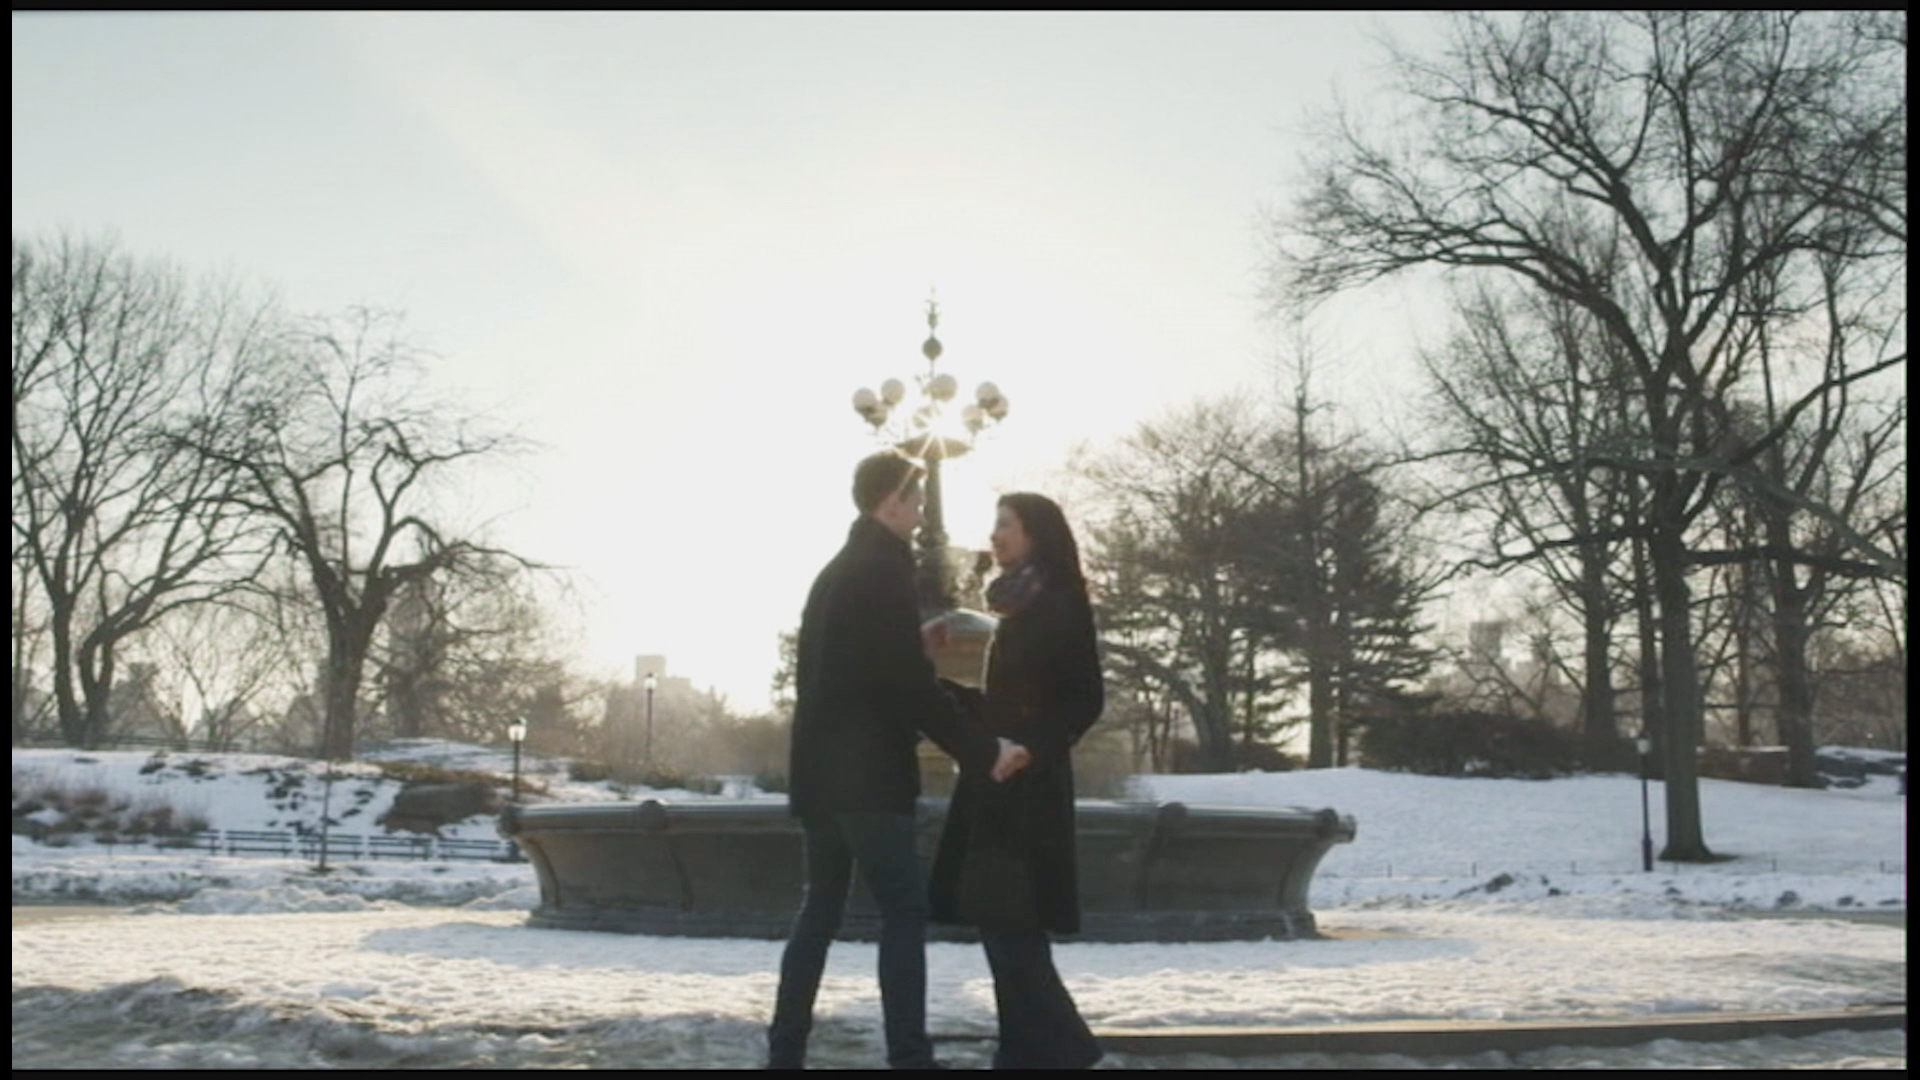 Breakfast in Bed - Jake (Billy Bob Thompson) and Brooke (Kate Chamuris) have their first kiss in Central Park.